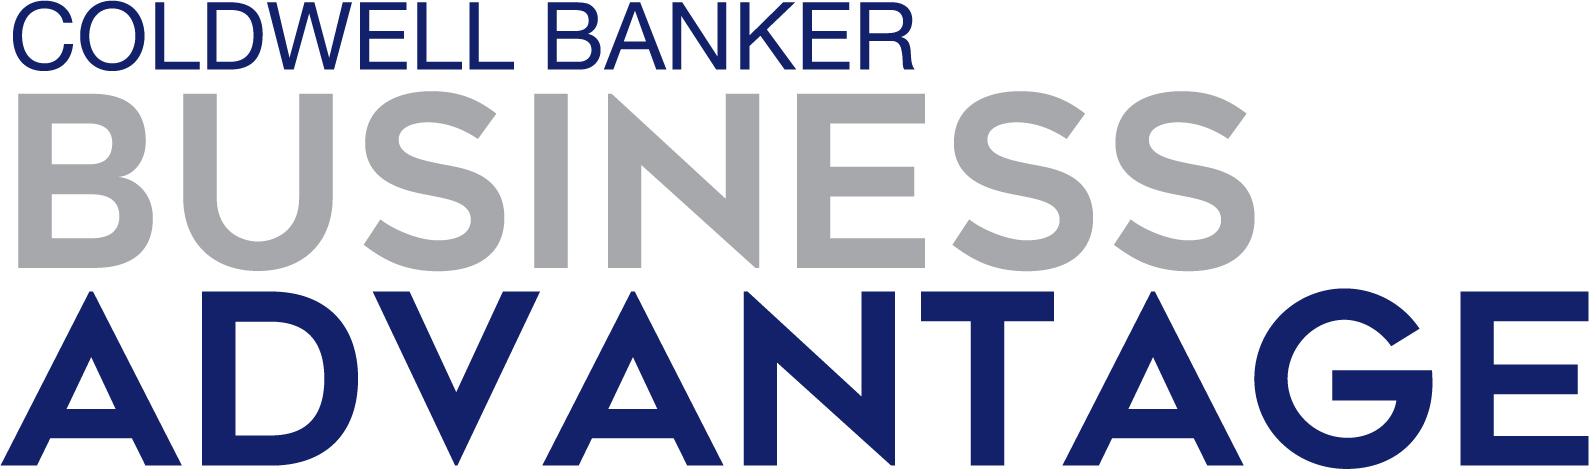 Coldwell Banker Business Advantage